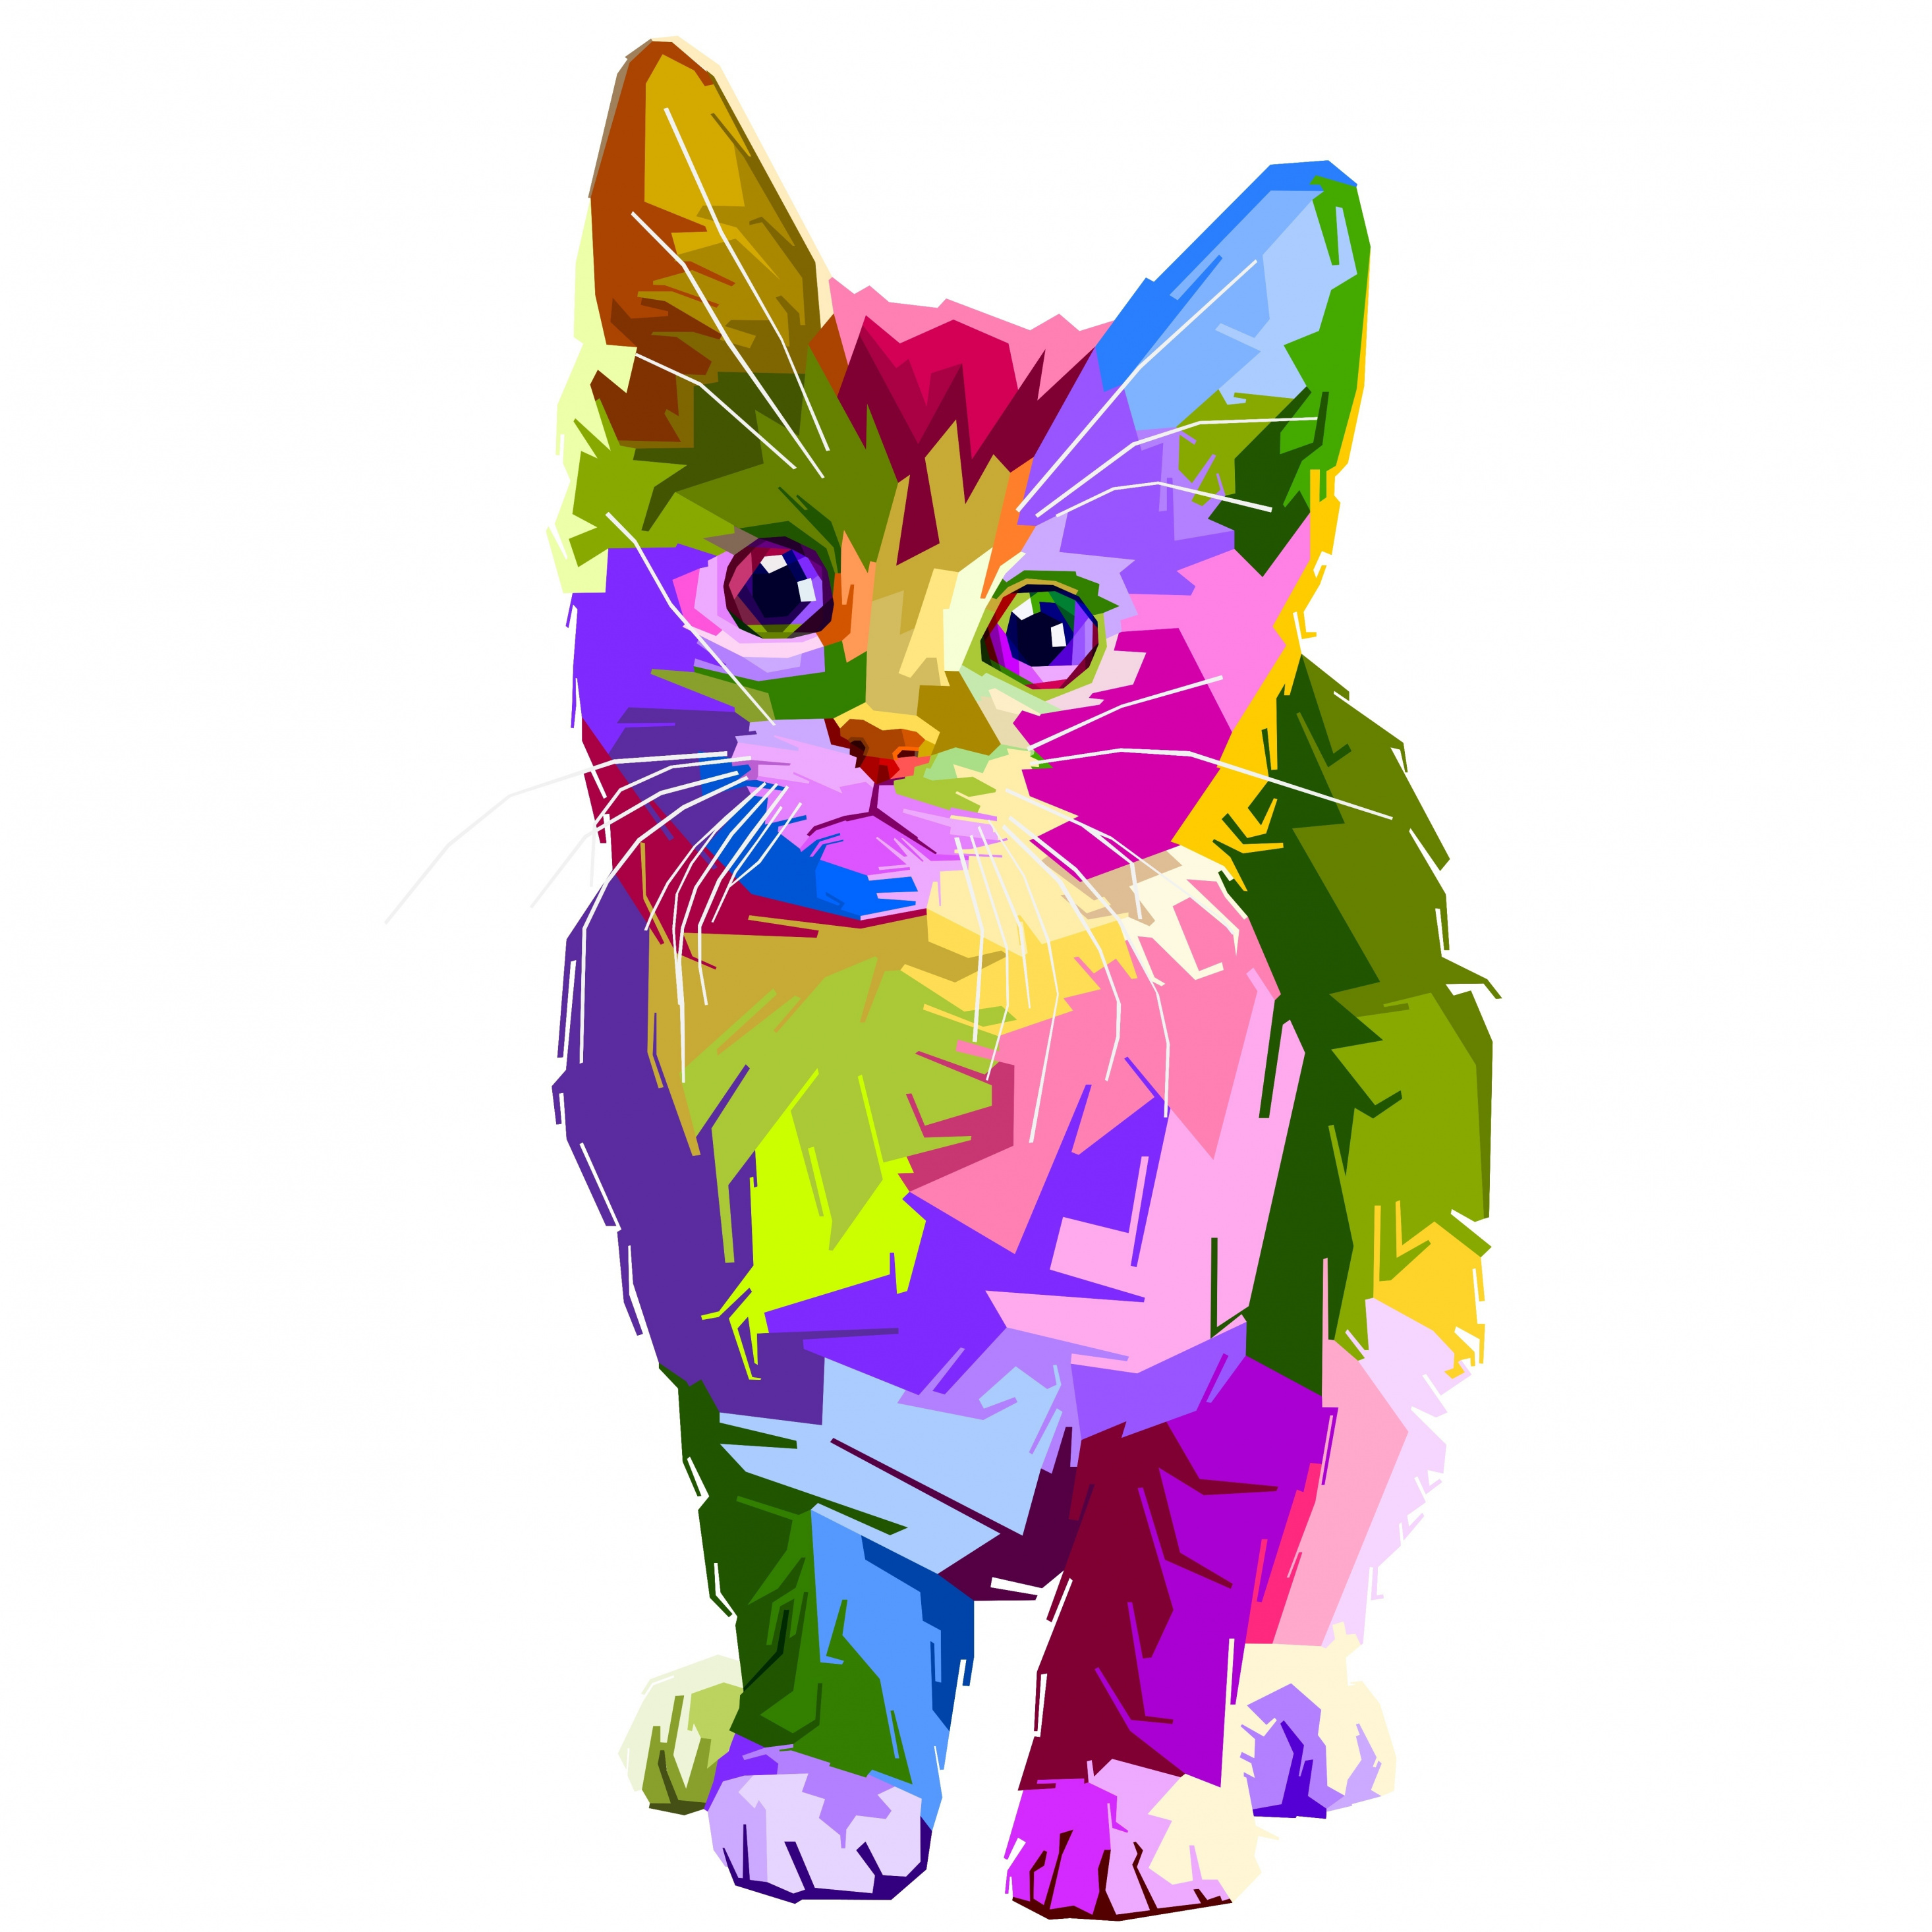 colorful kitten art copy - Tendencias Diseño Gráfico 2019